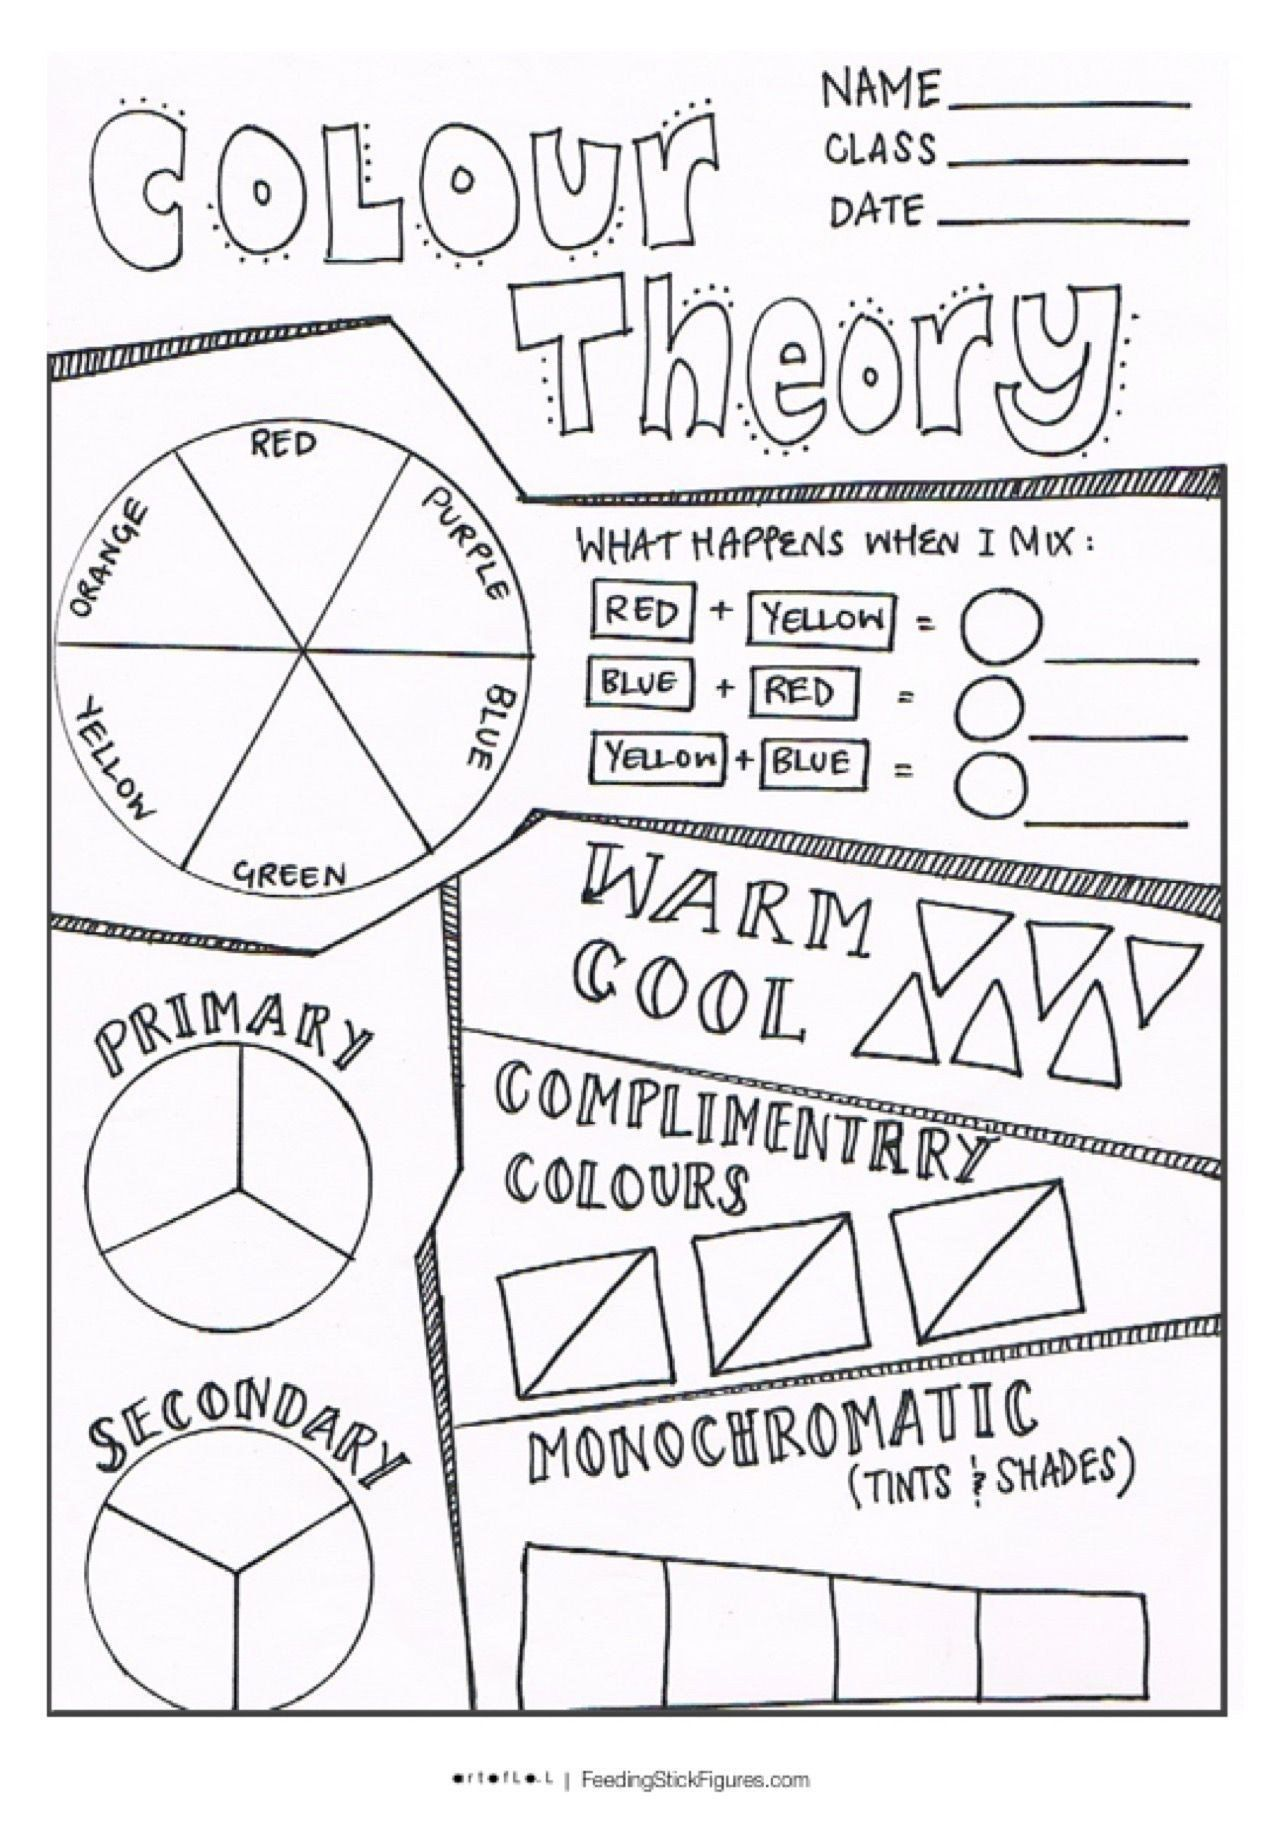 Color Theory Worksheet Answer Key 112 Best Color Lessons